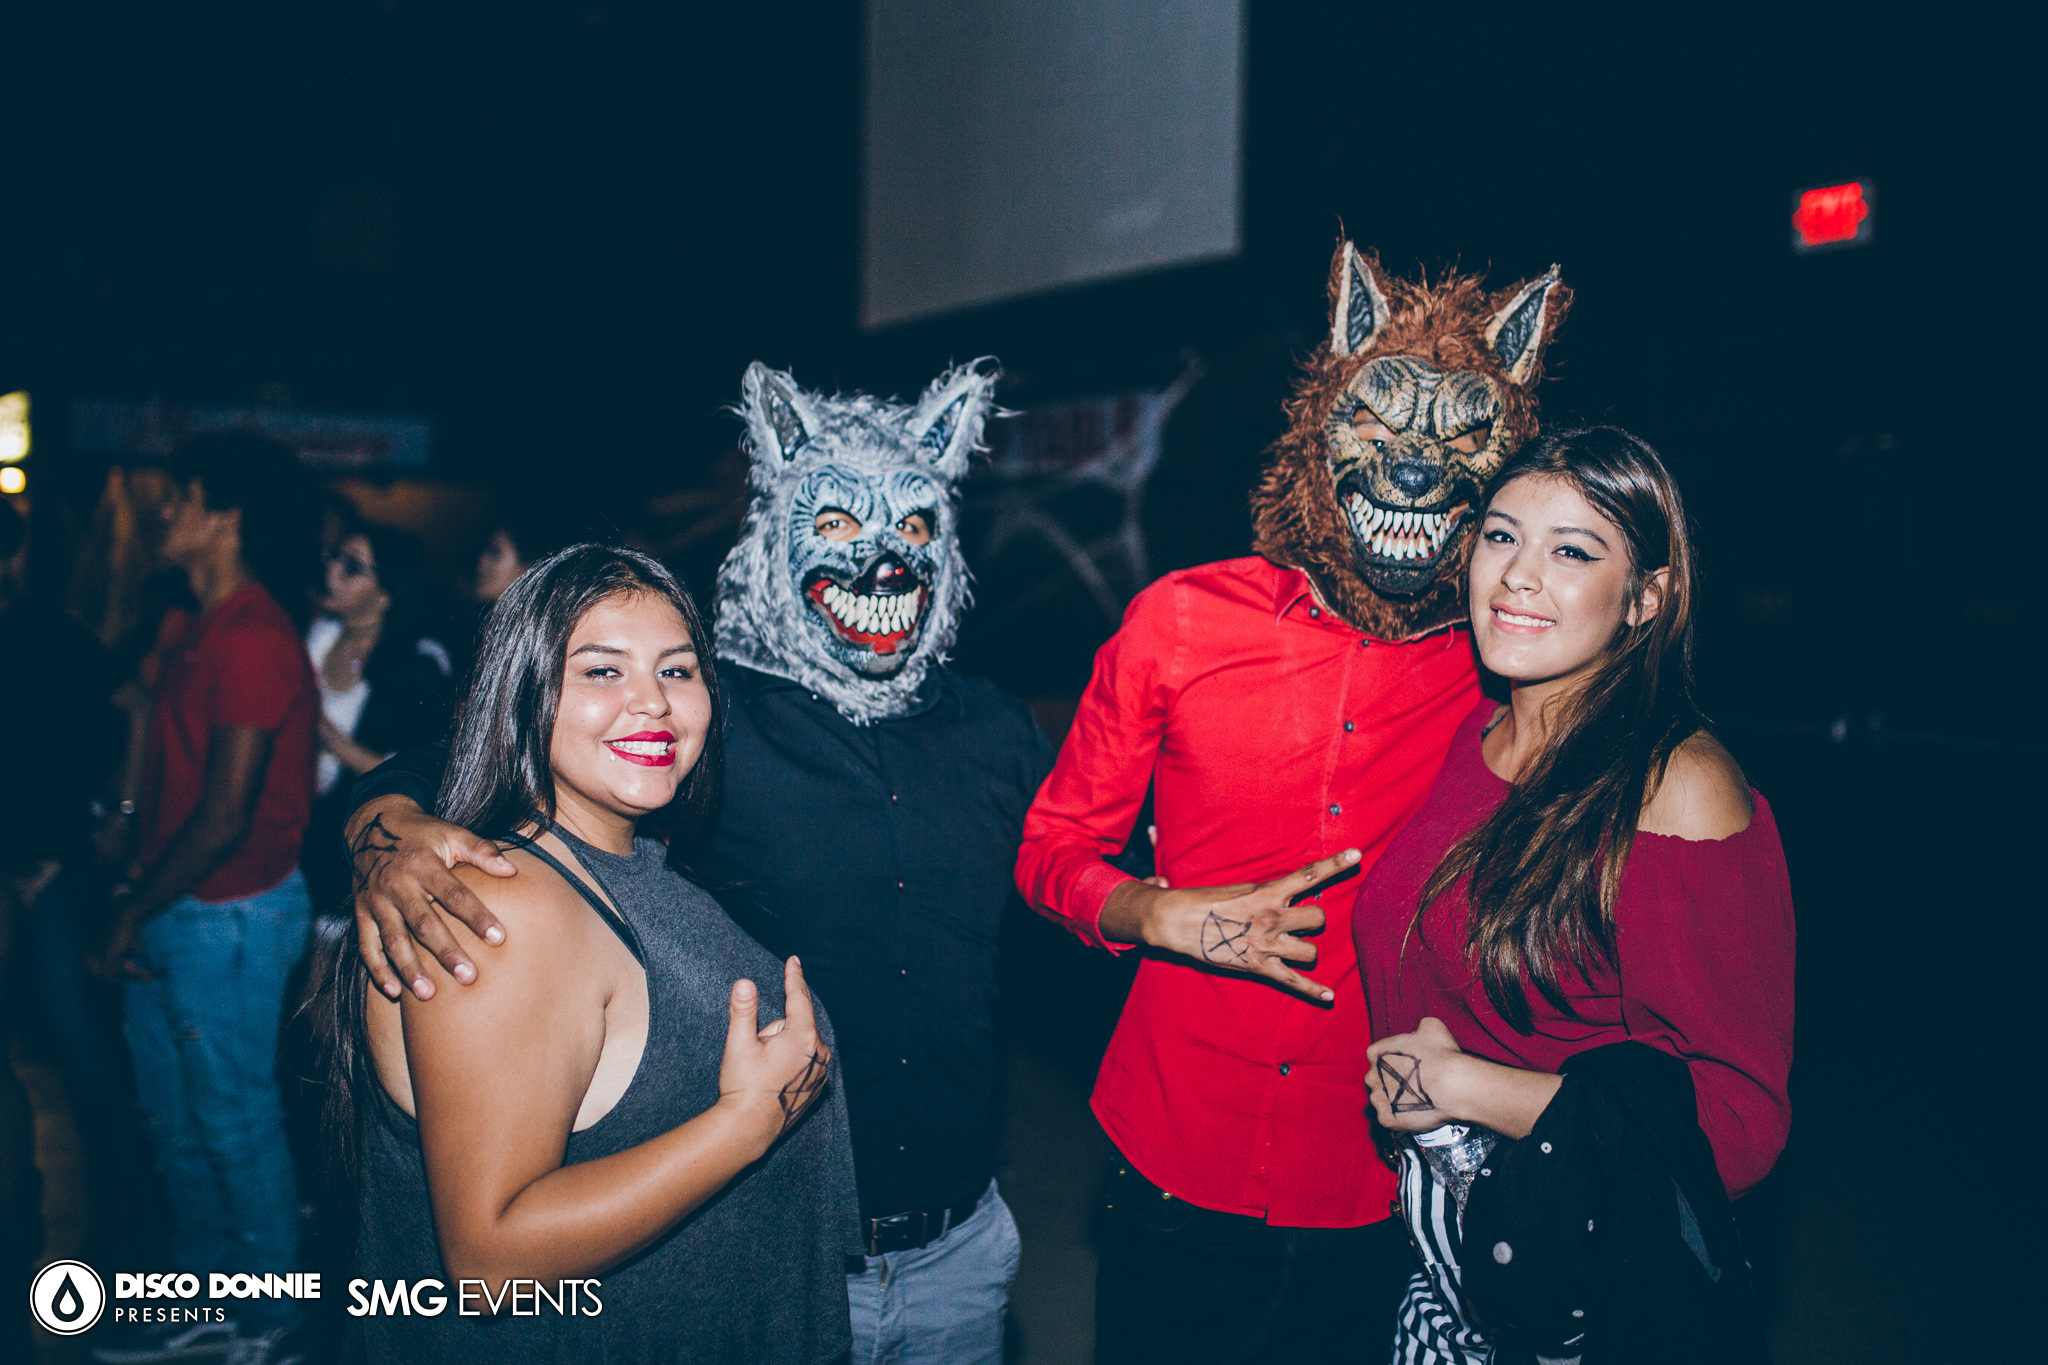 photos from jauz, 4b at buchanan's event center